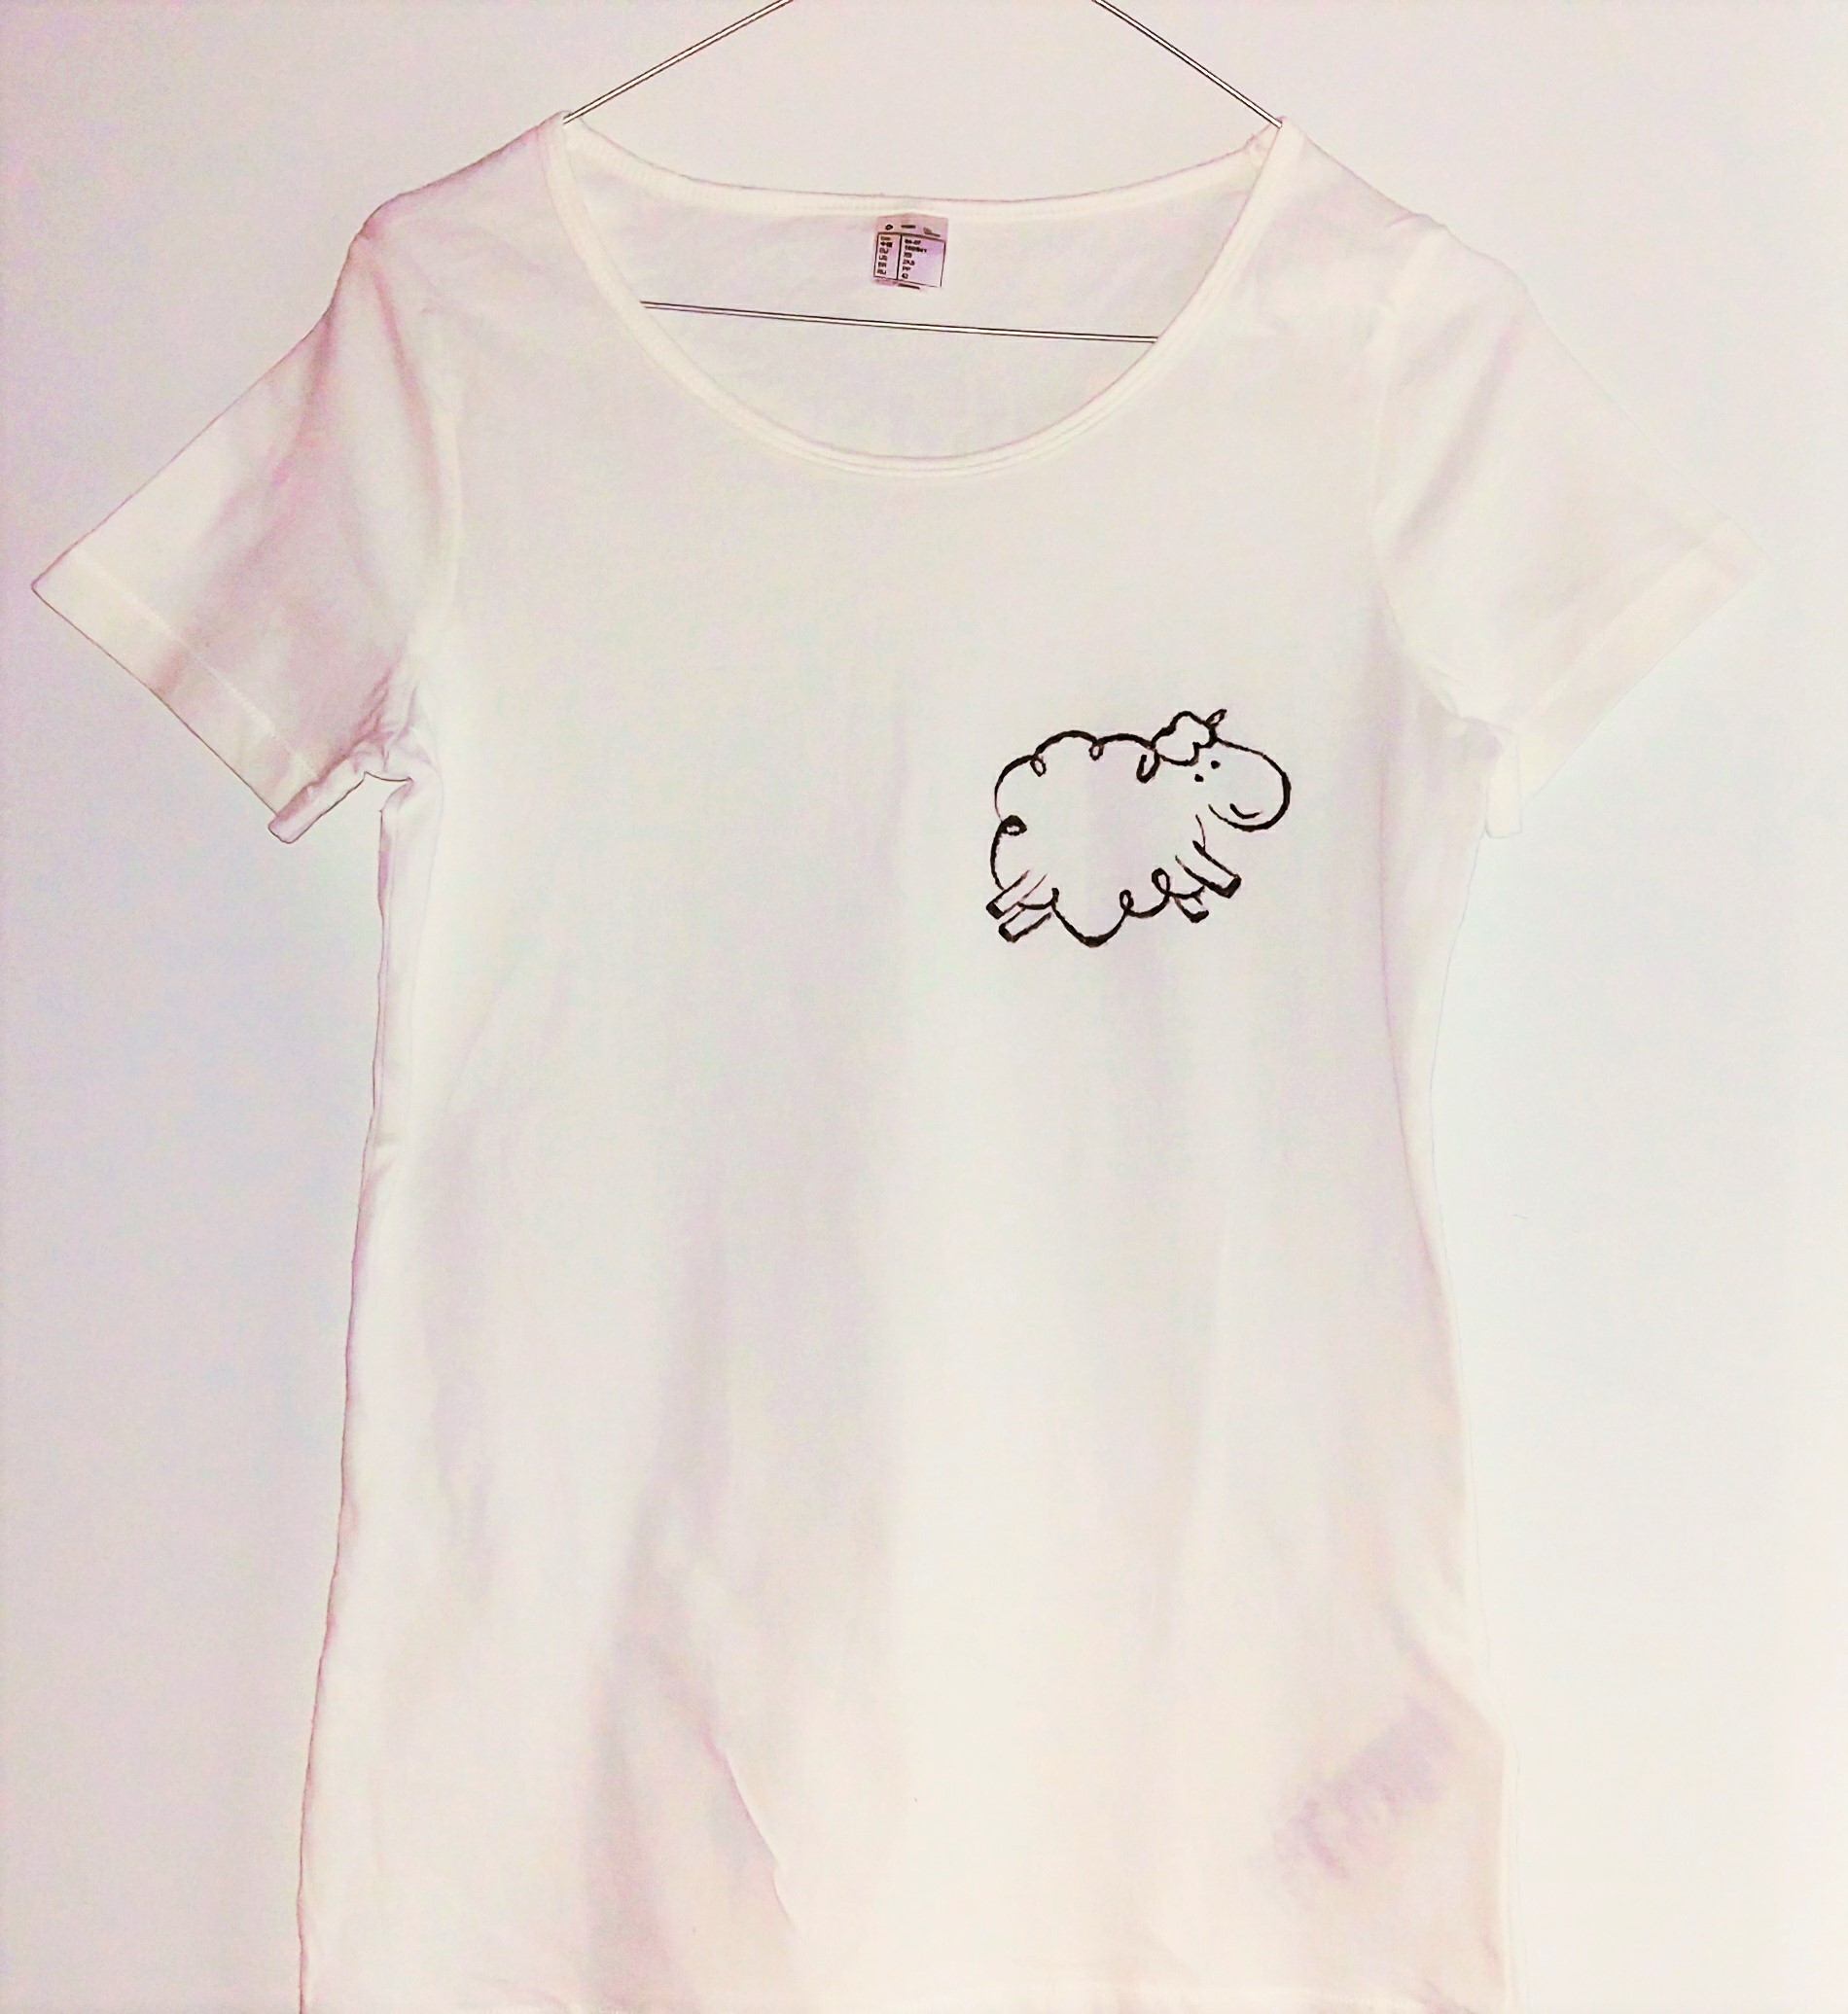 Handmade sheep t-shirt